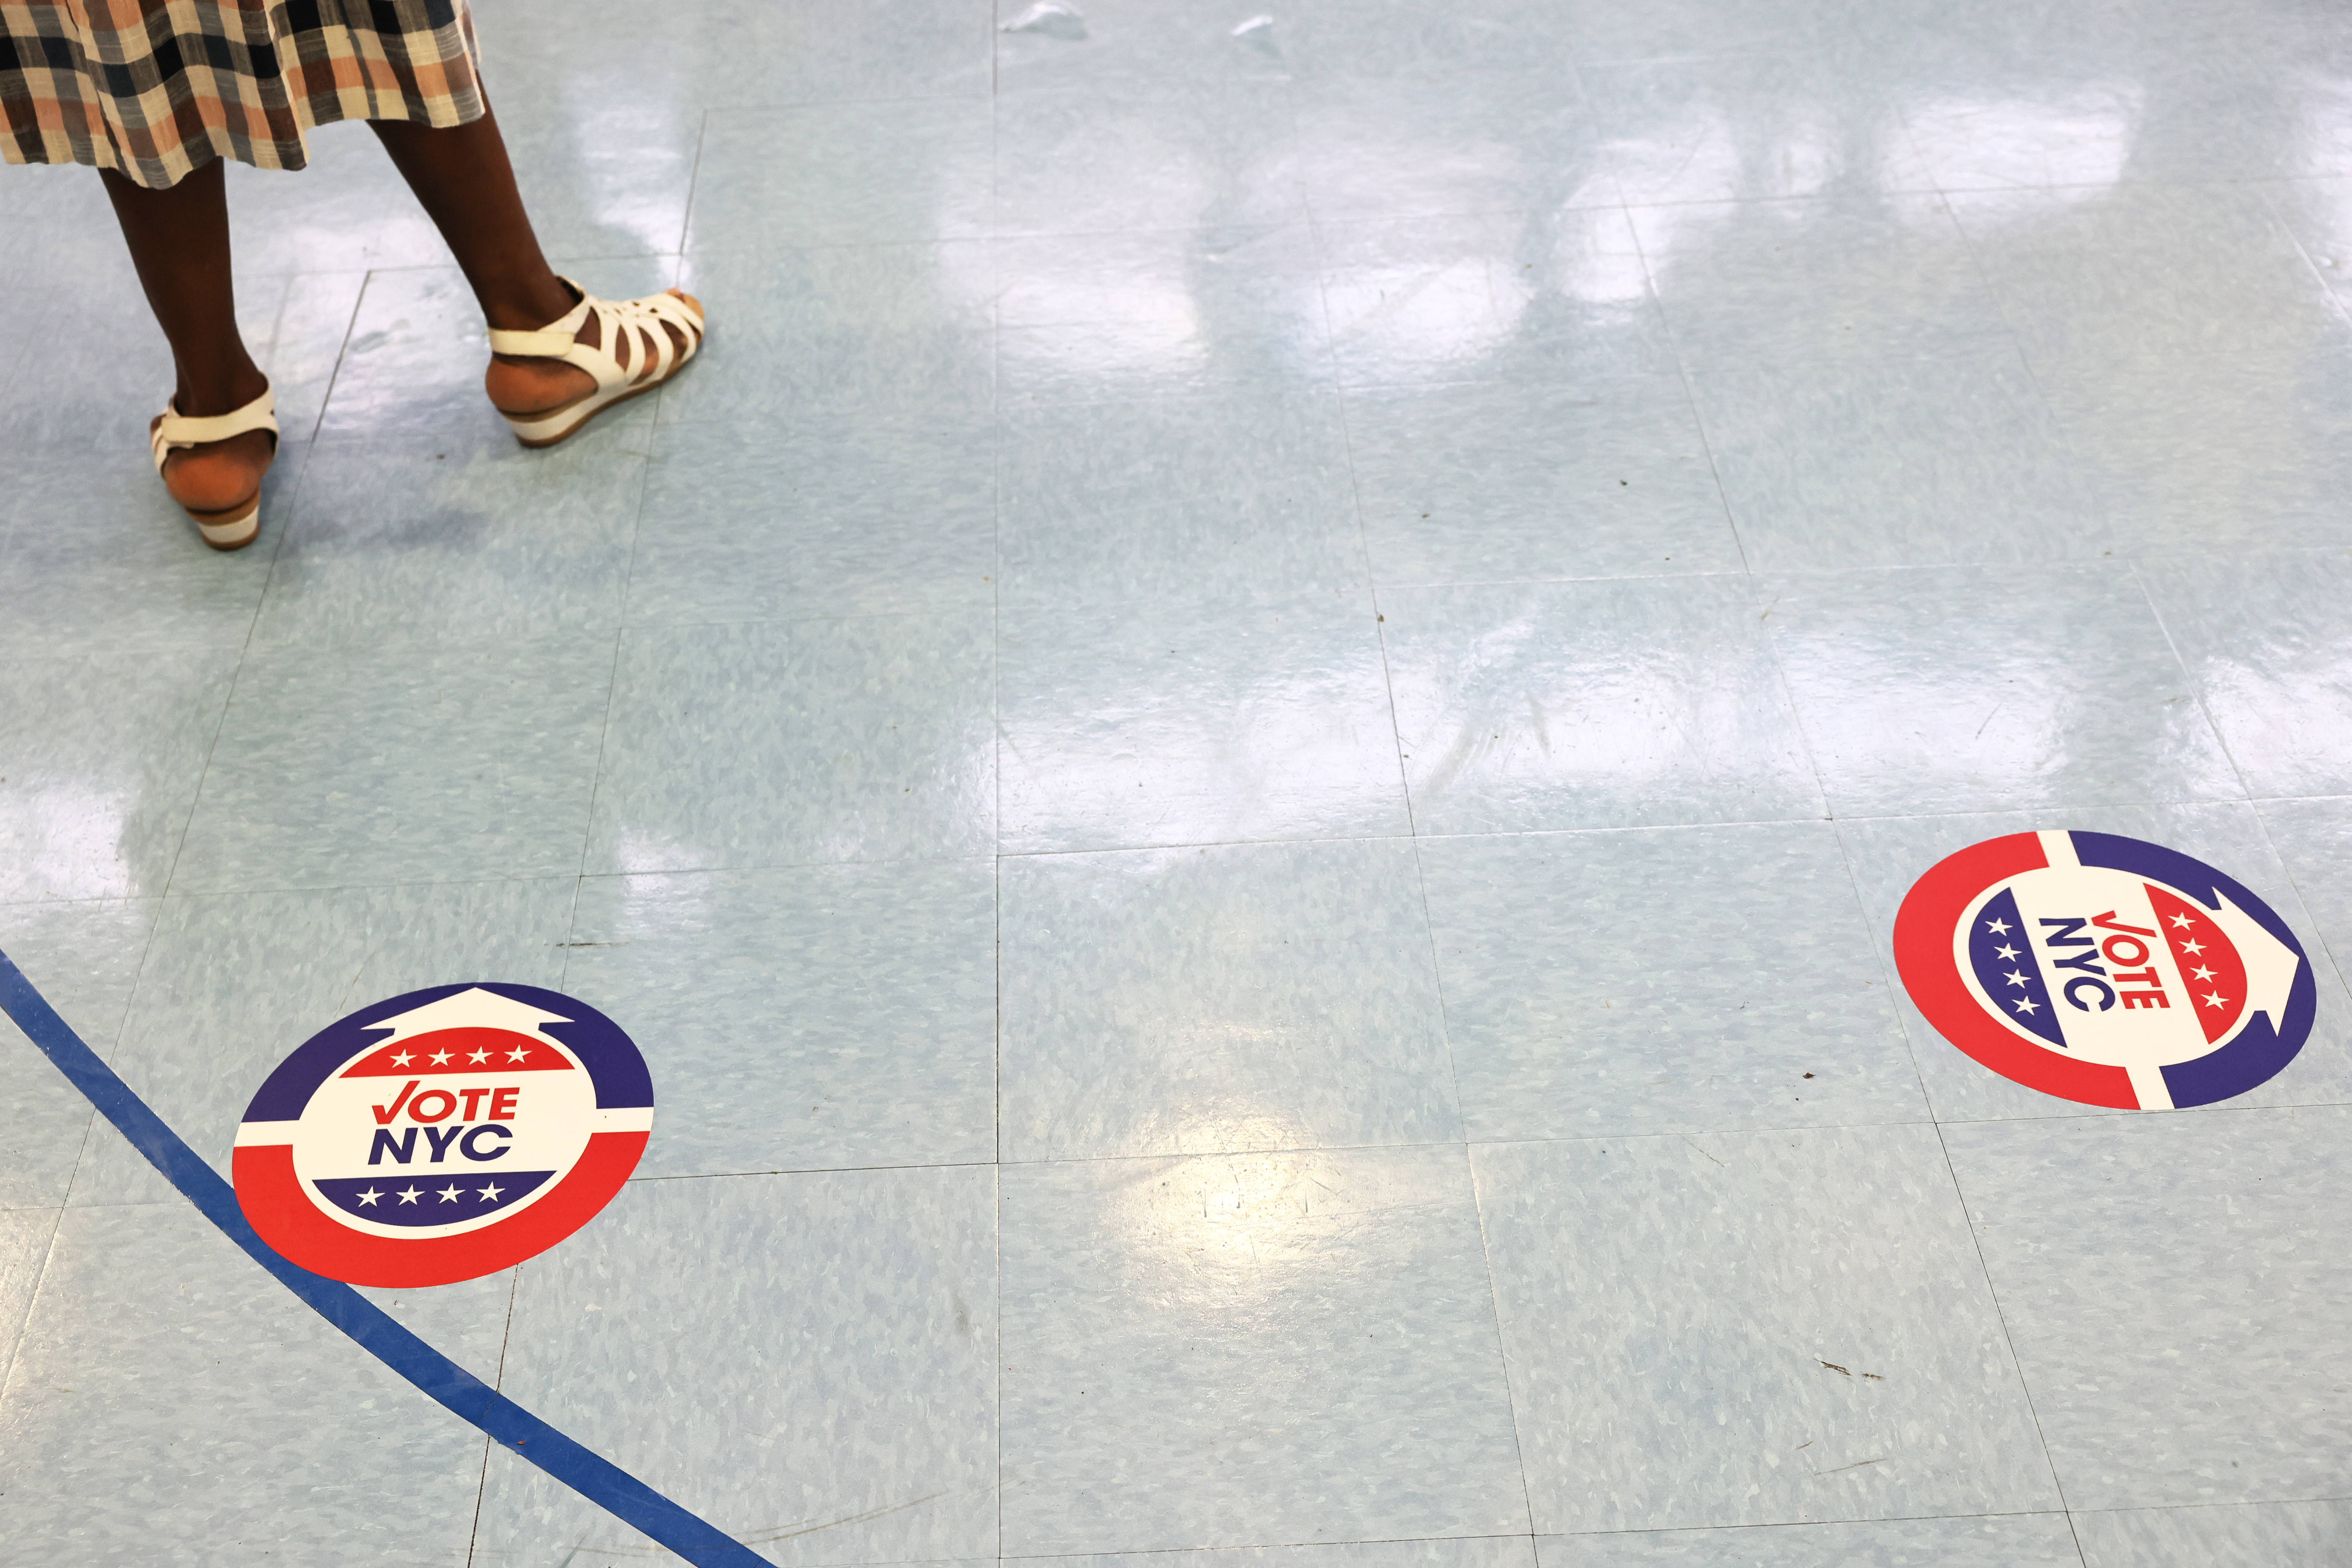 A person waits in line to vote during the Primary Election Day at P.S. 81 on June 22, 2021 in the Bedford-Stuyvesant neighborhood of Brooklyn borough in New York City.